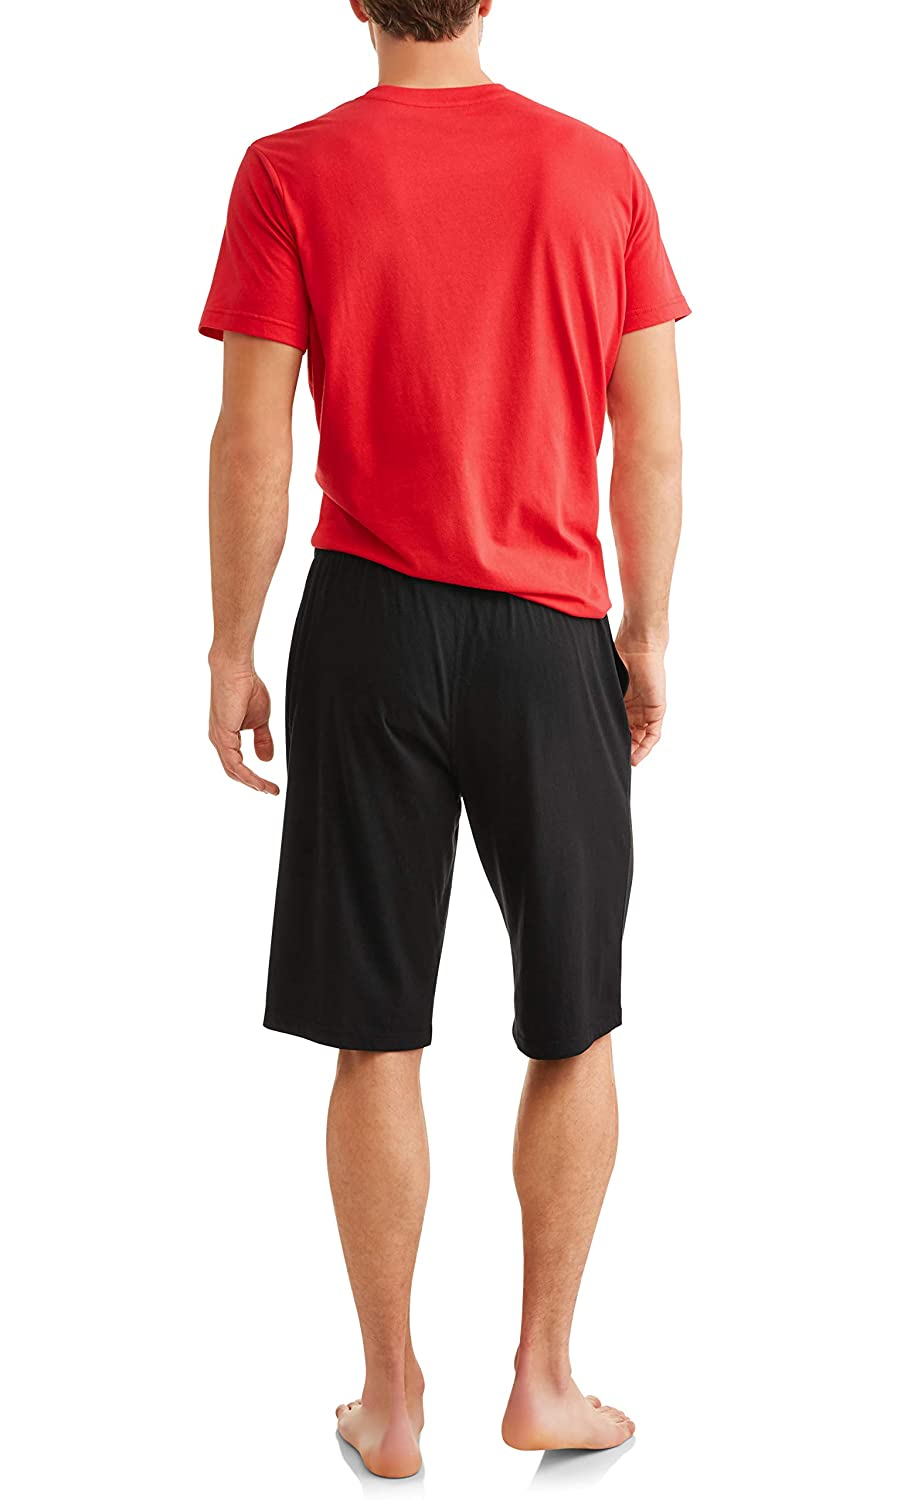 Disney Pixar Mens Incredibles 2 PC Shirt Shorts Pajama Set,Sizes S-XL